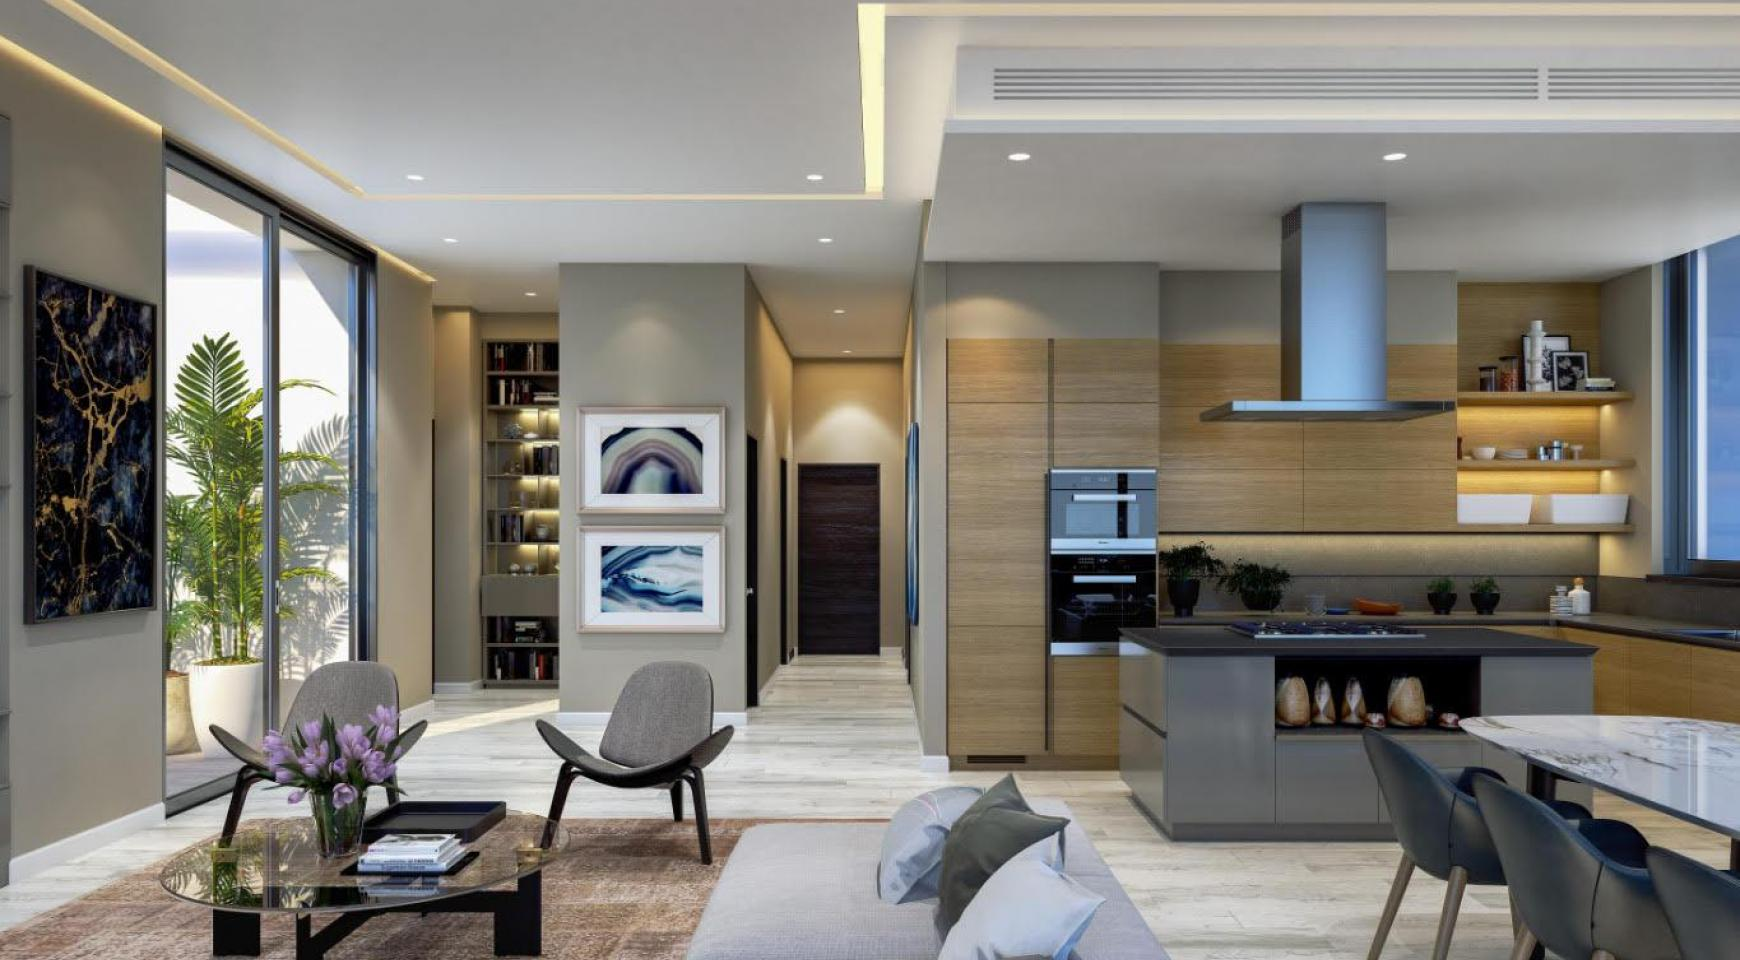 Contemporary 2 Bedroom Apartment with Sea Views in a Luxurious Complex - 8